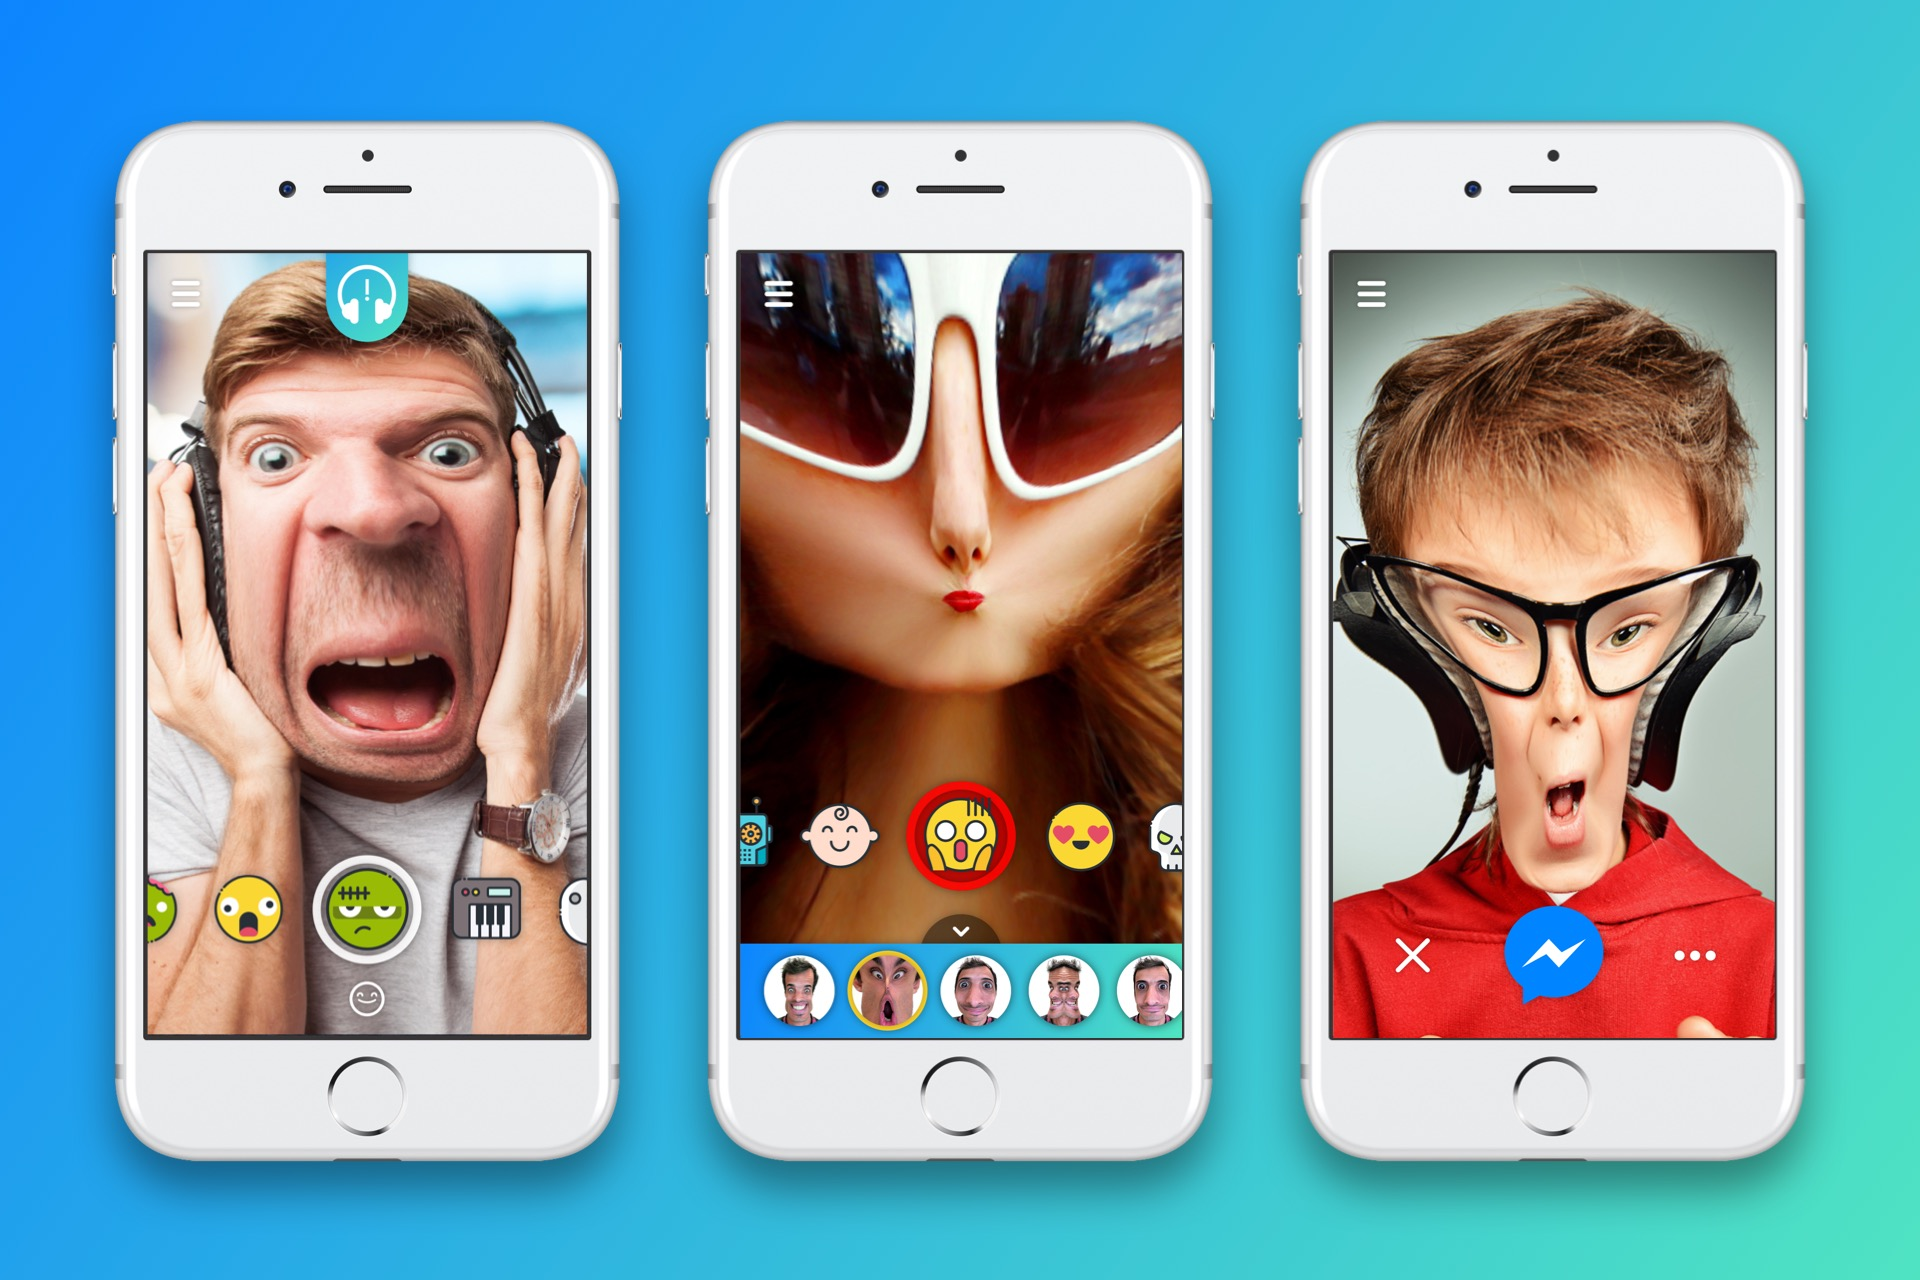 Voice Swap, Live Voice Changer & Face Filters by Voicemod